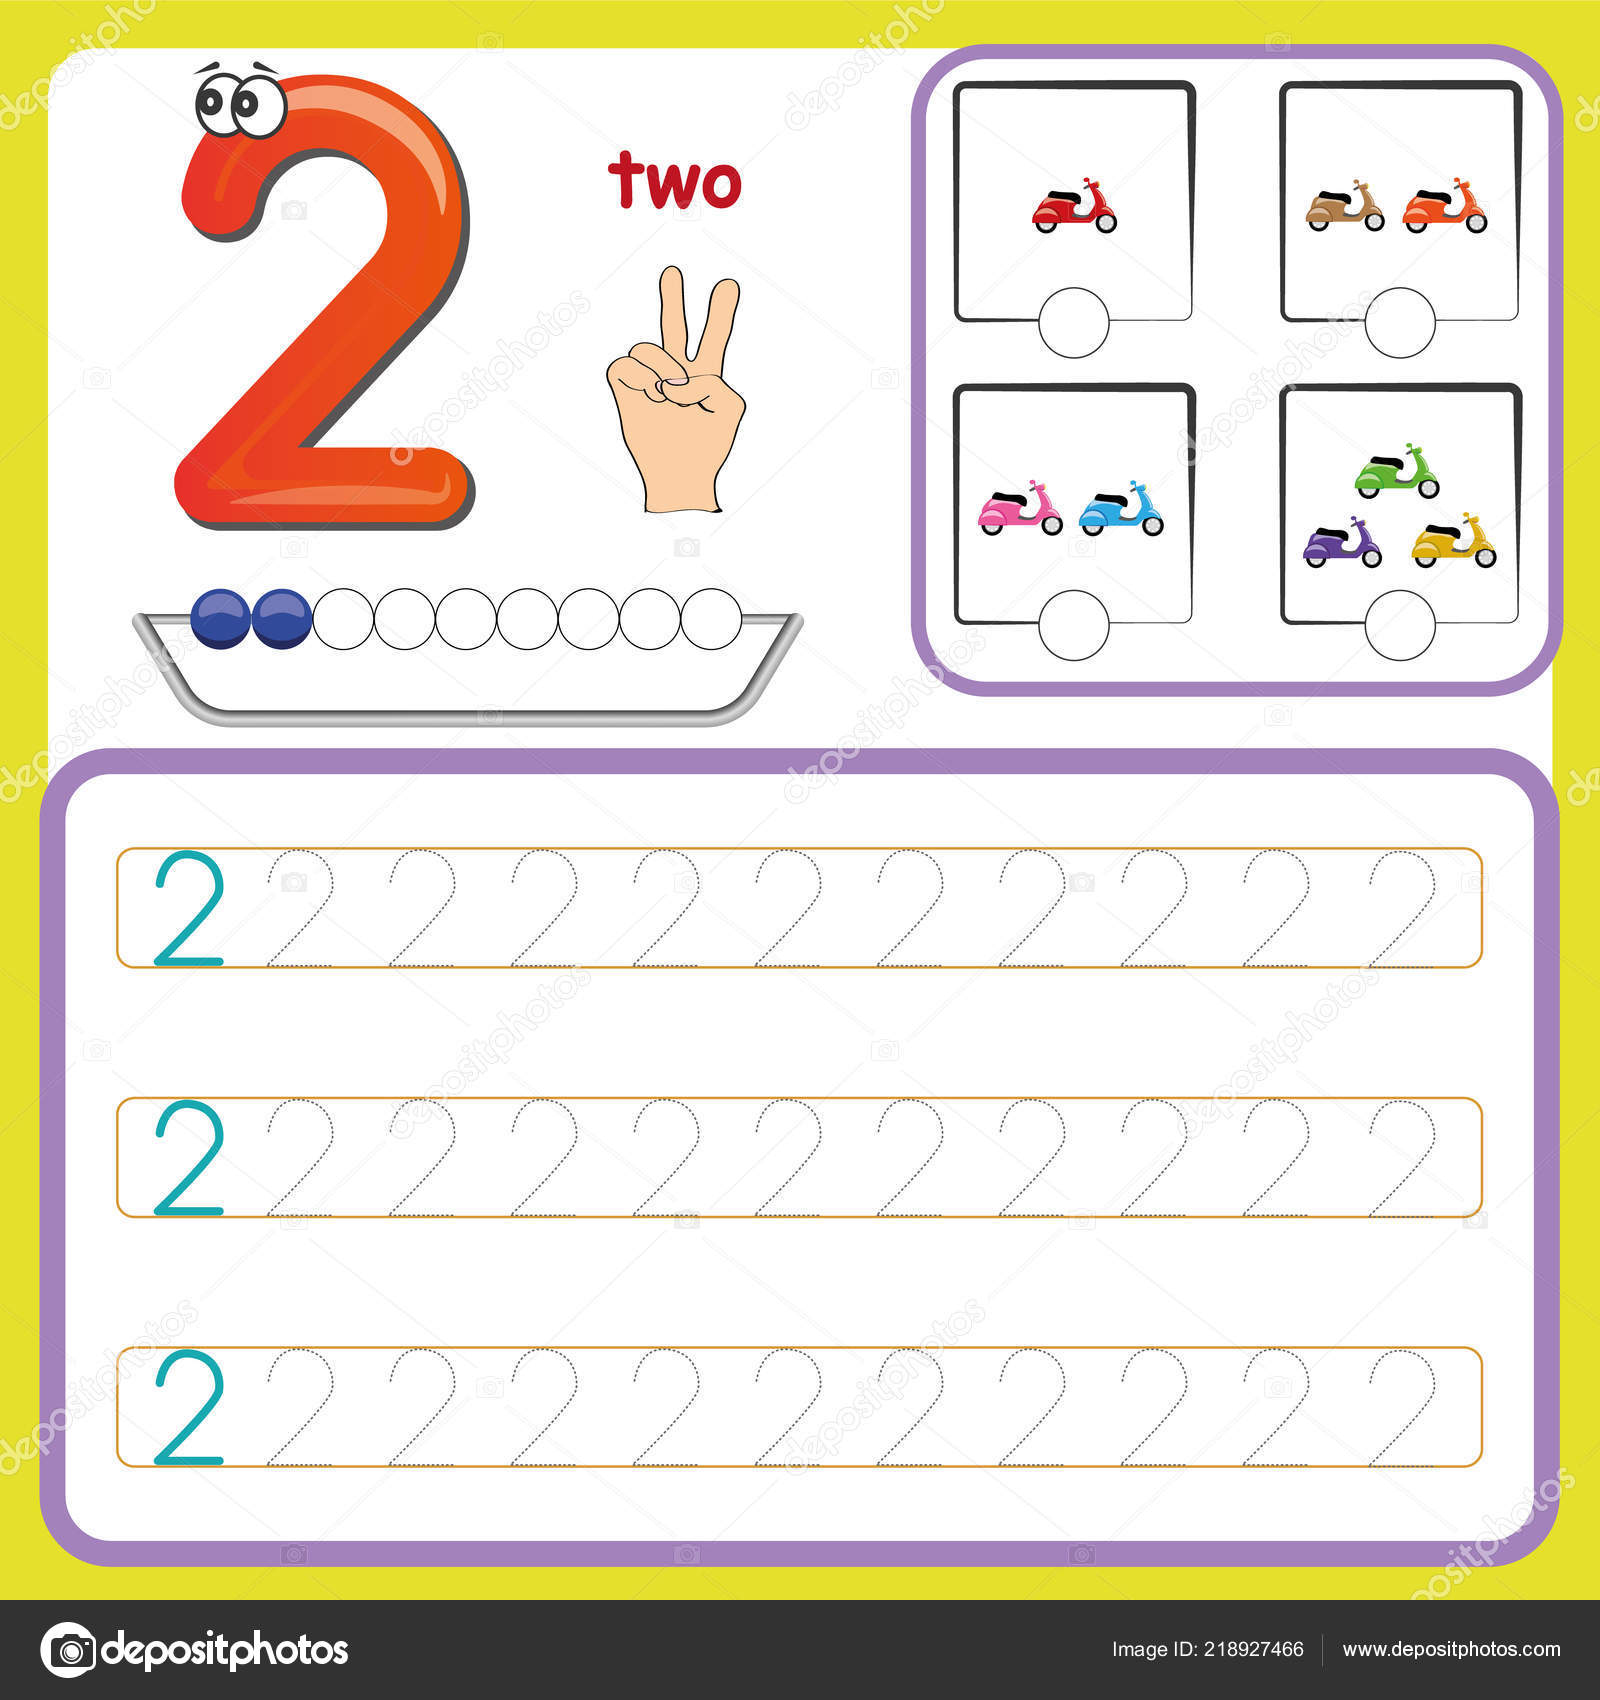 Preschool Worksheet Gallery Learning Number Tracing